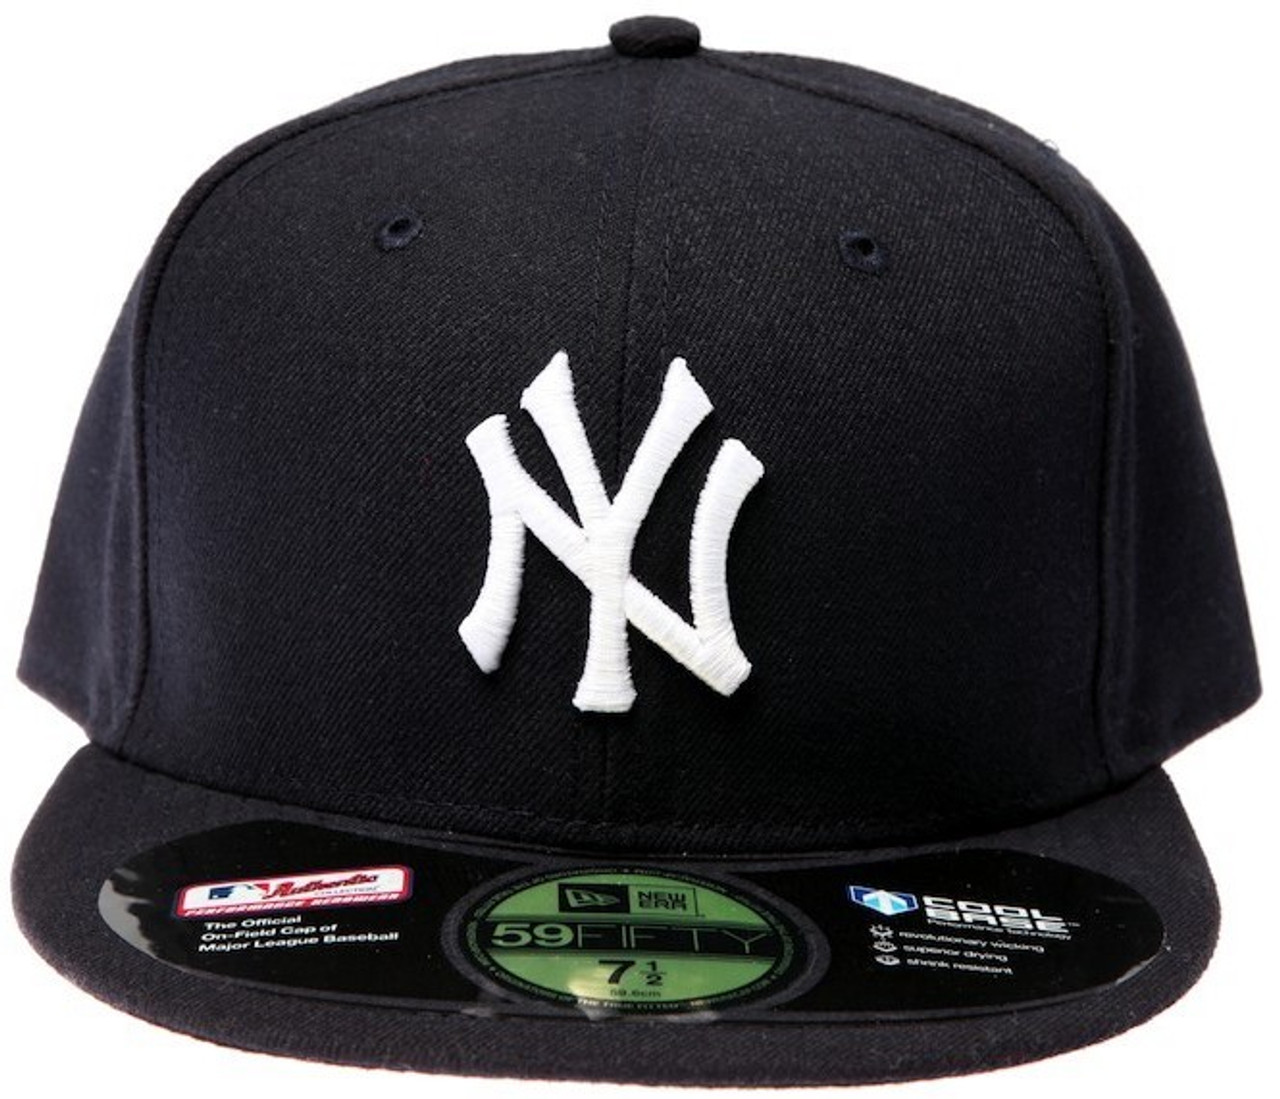 check out 5e31f c3194 amazon new york yankees new era 59fifty fitted cap 49bc9 72fa9